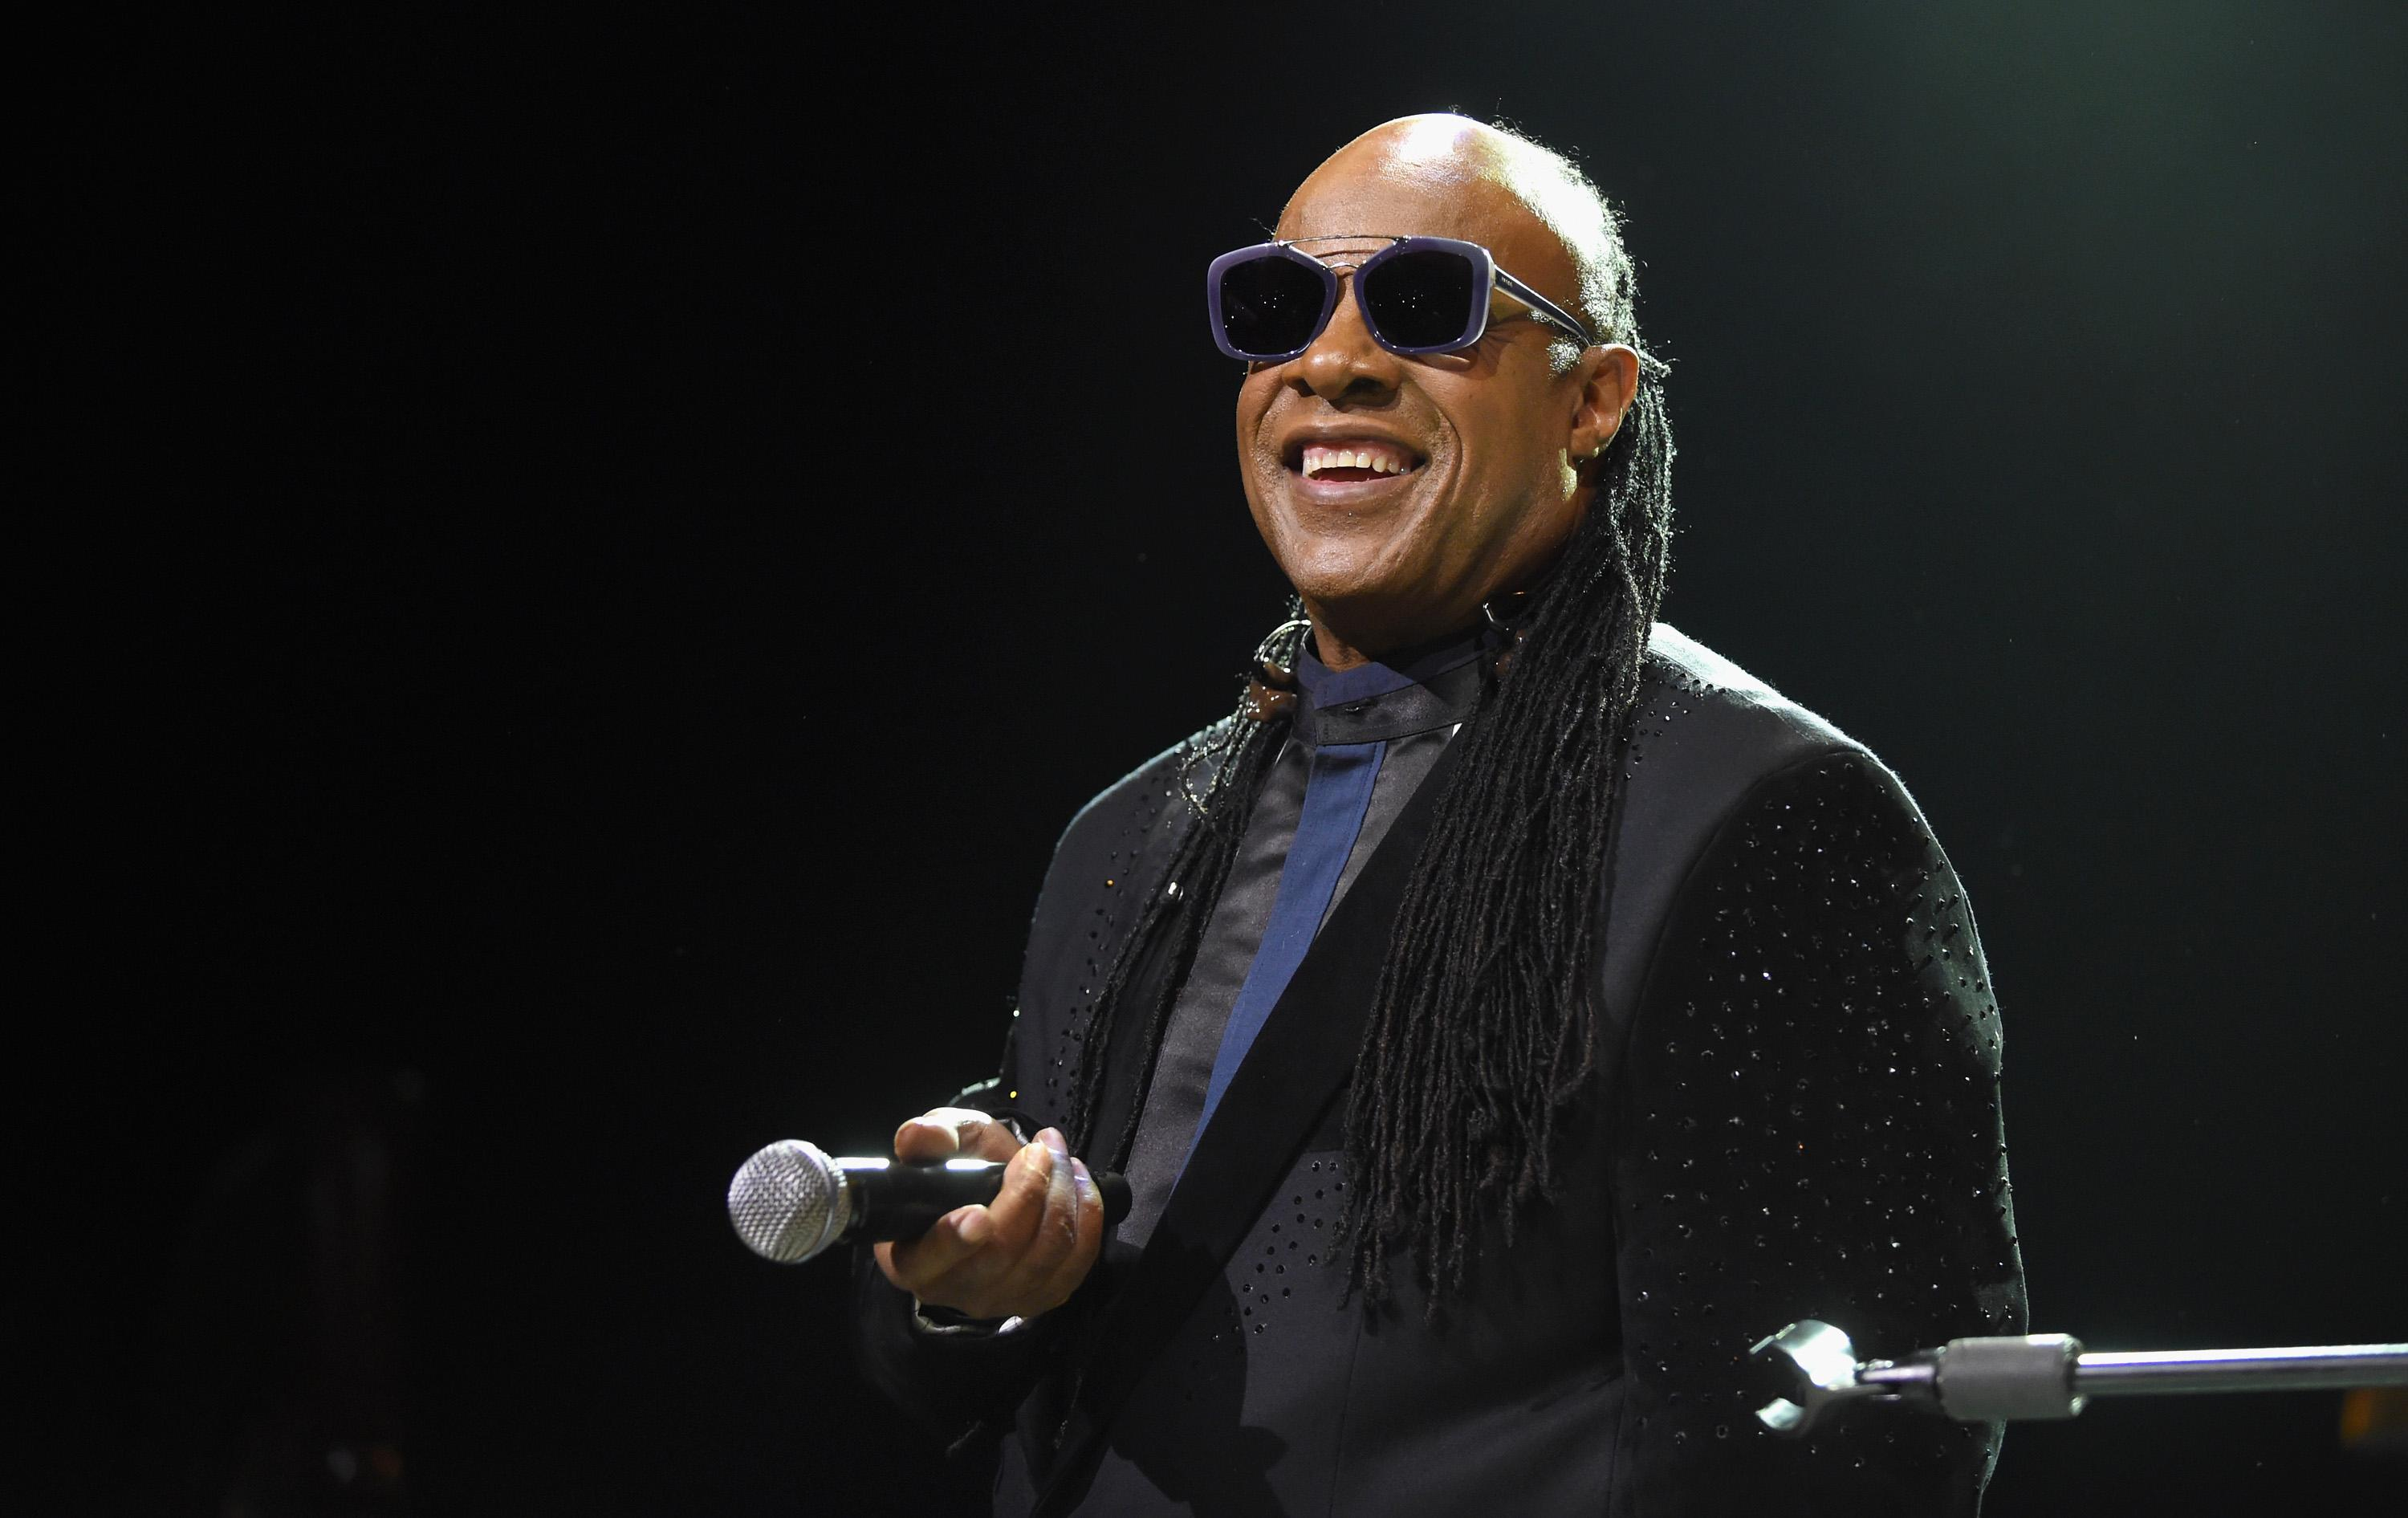 Stevie Wonder takes both knees 'for America' after President Trump's National Football League  remarks